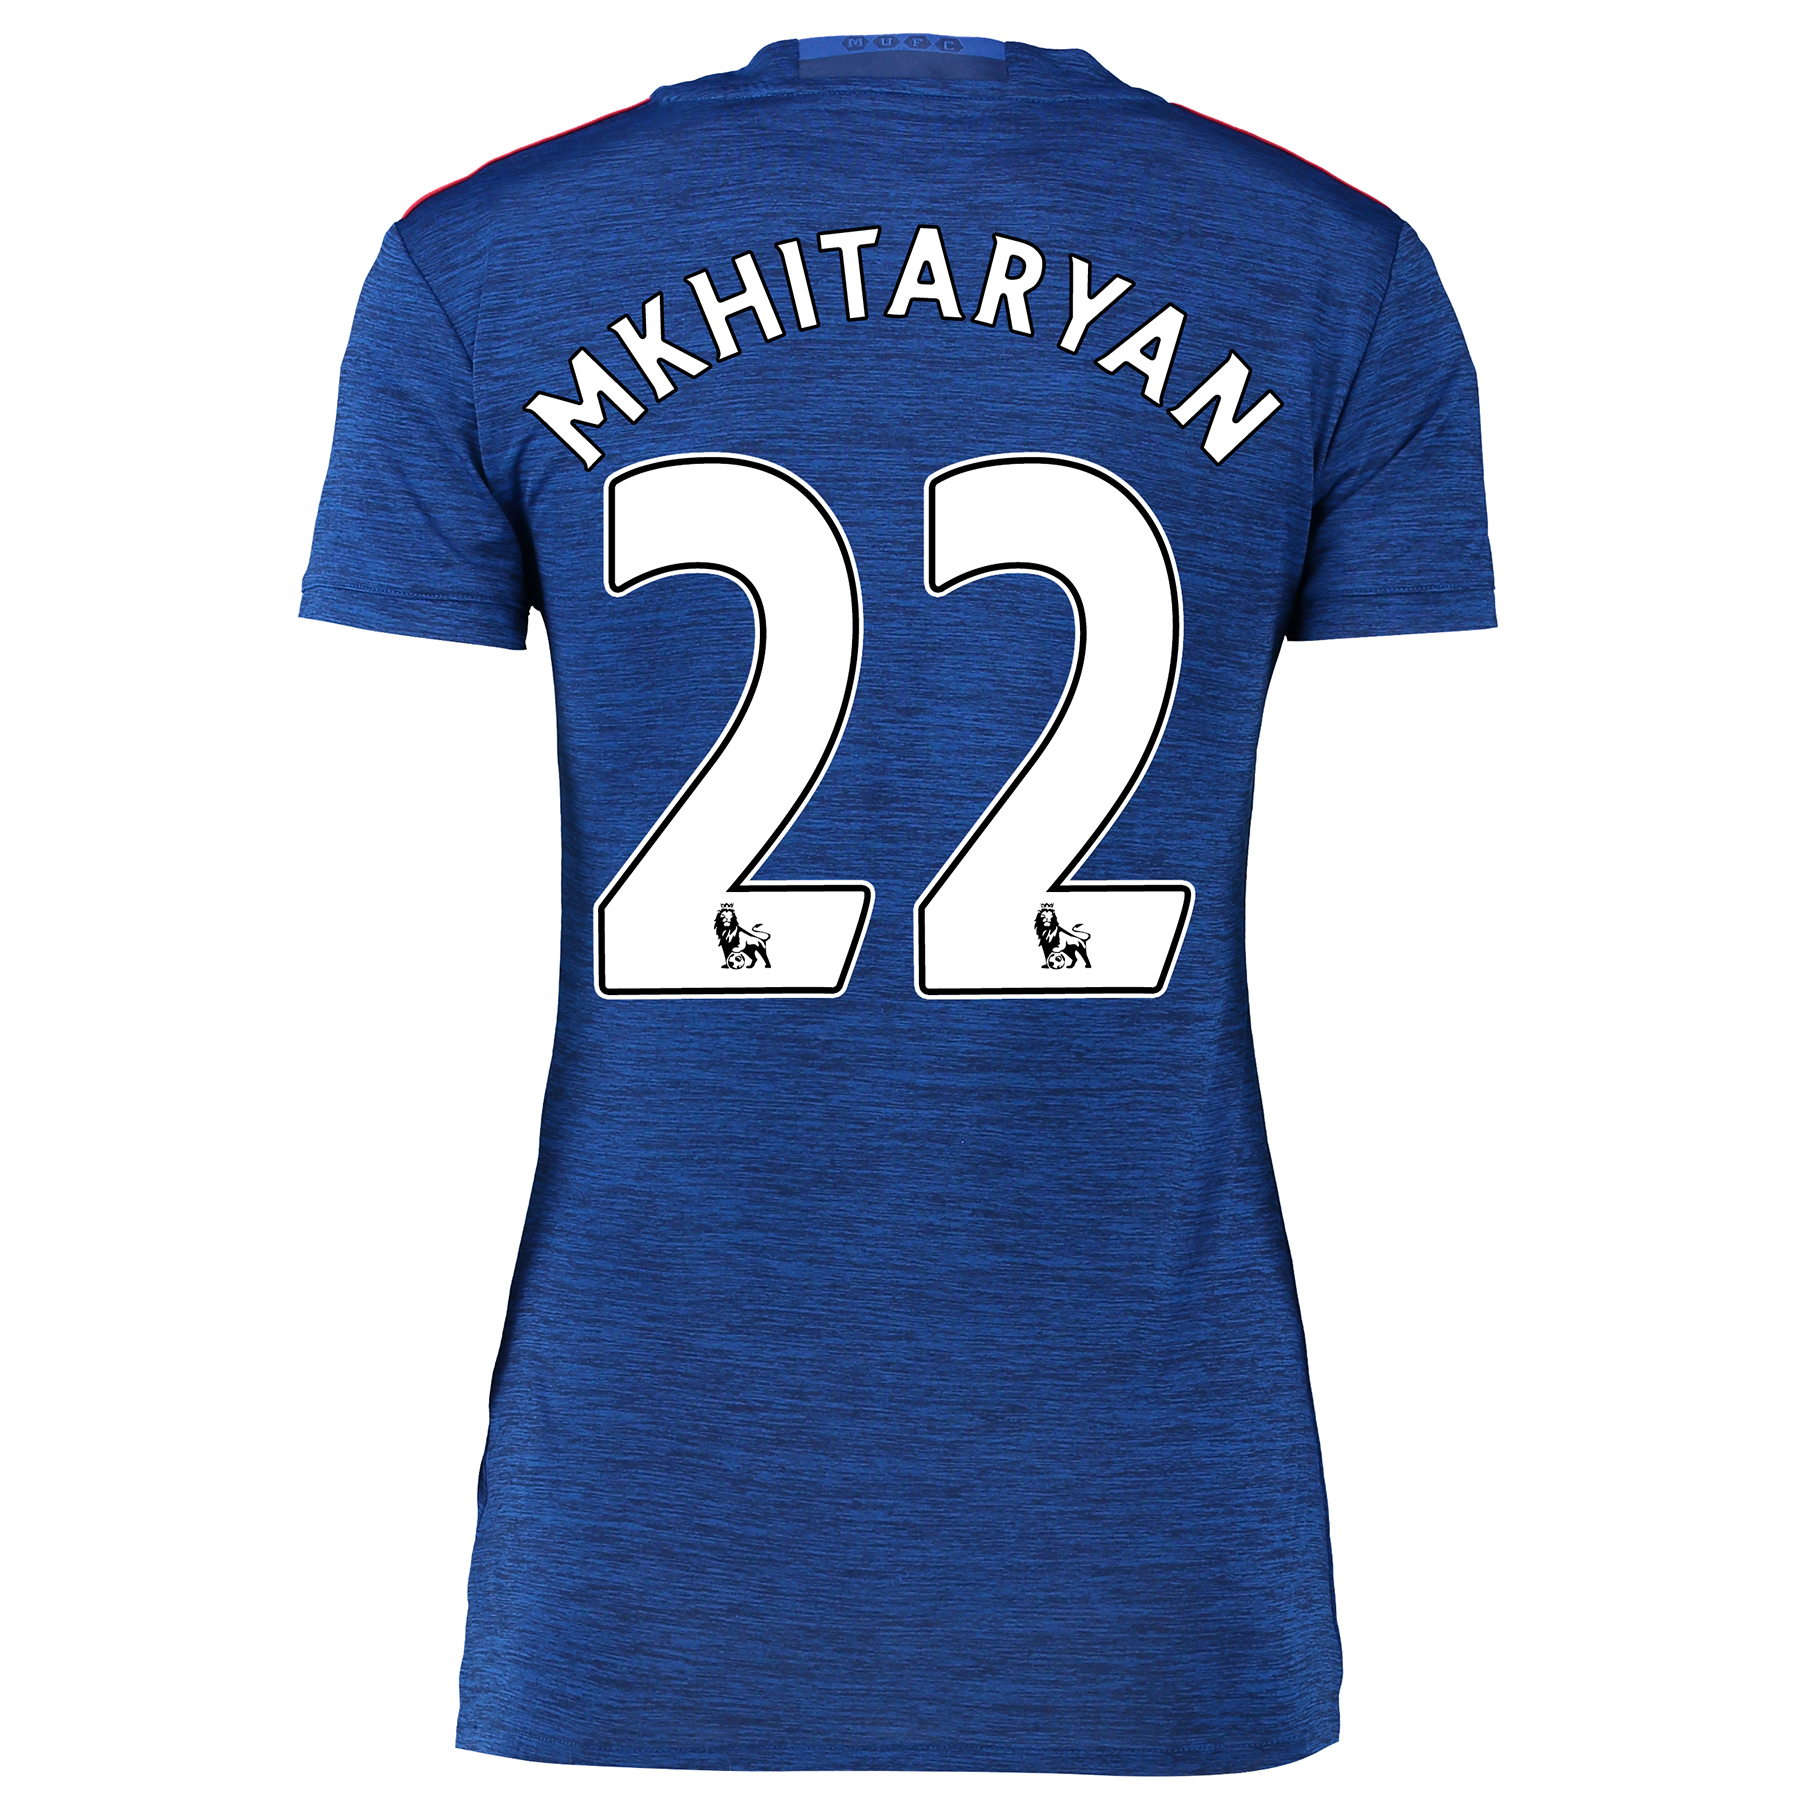 Manchester United Away Shirt 2016-17 - Womens with Mkhitaryan 22 print